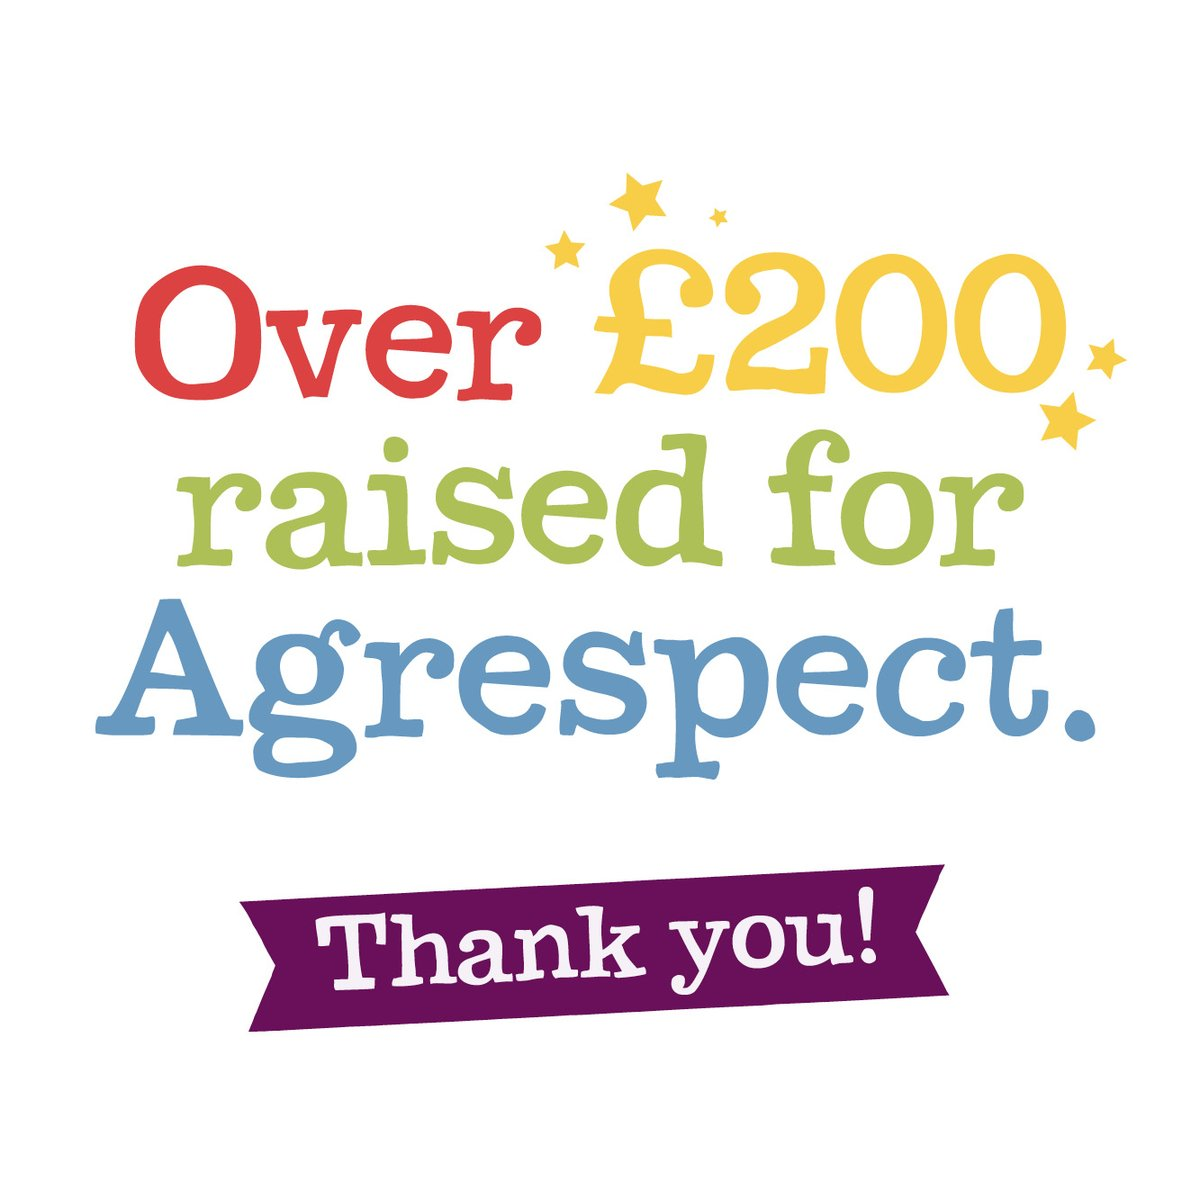 They say time is a healer, but thyme is also great fundraiser! In fact, we're pleased to announce that sales of our organic thyme have raised over £200 to support the work of @weareagrespect during #PrideMonth🏳️🌈. Read the blog to find out more: https://t.co/HGPQNquflY https://t.co/CTbs61gNe7